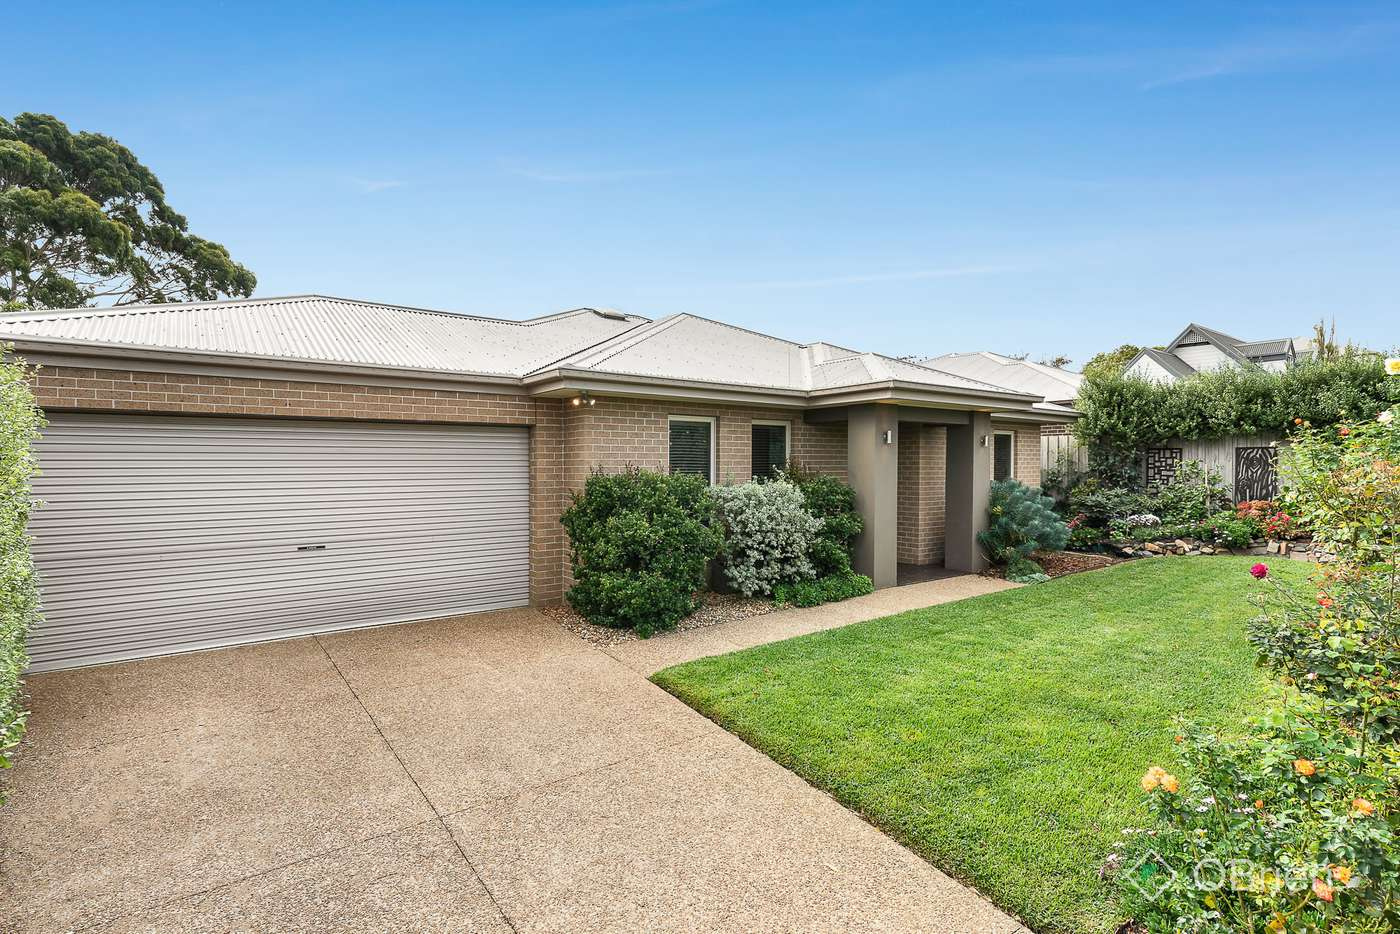 Main view of Homely house listing, 13 Oakland Street, Mornington VIC 3931